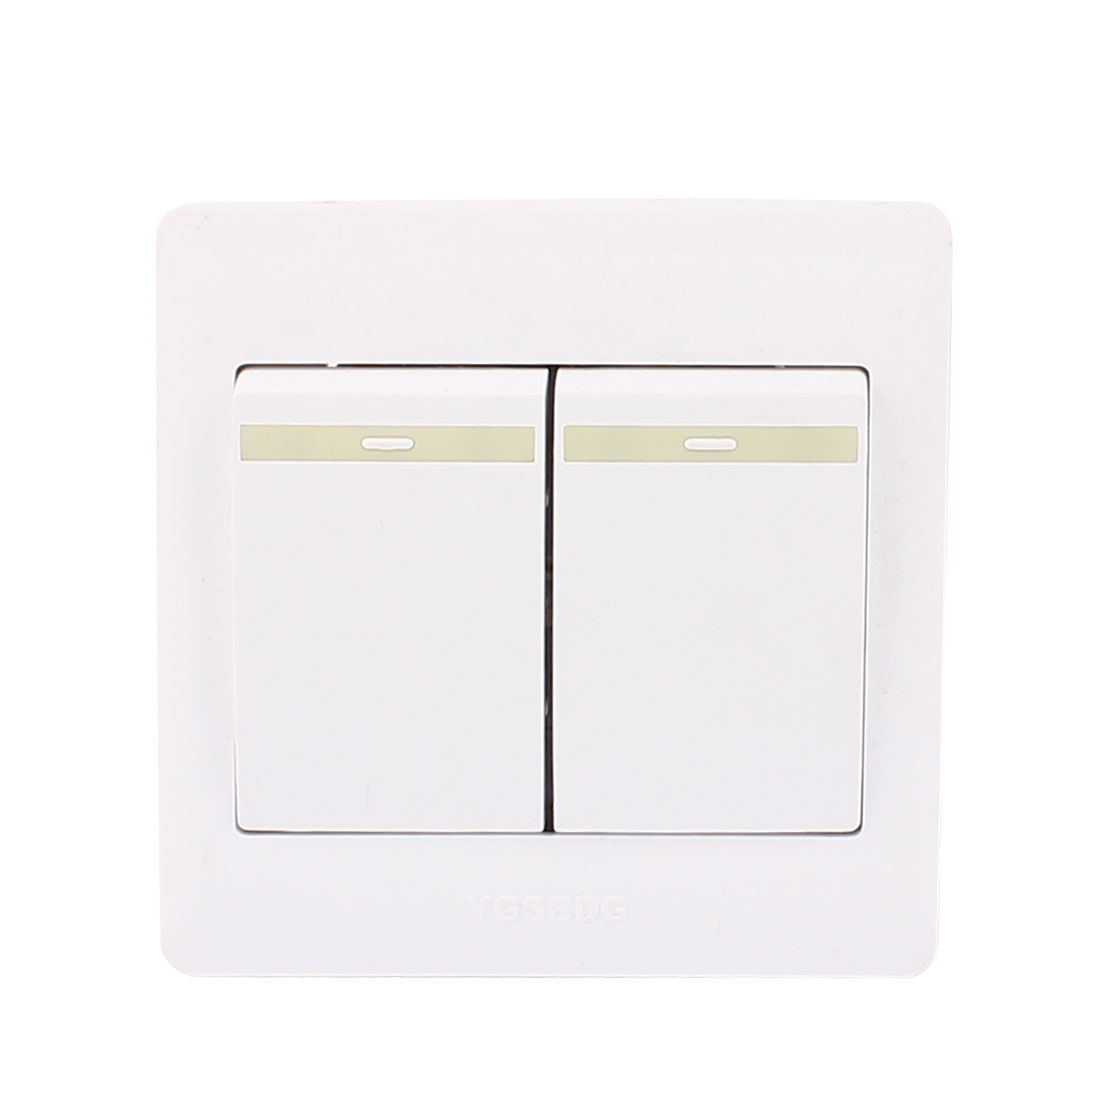 AC 250V 10A 2 Gang 2 Way On/Off 86Type Plastic Housing Wall Light Switch